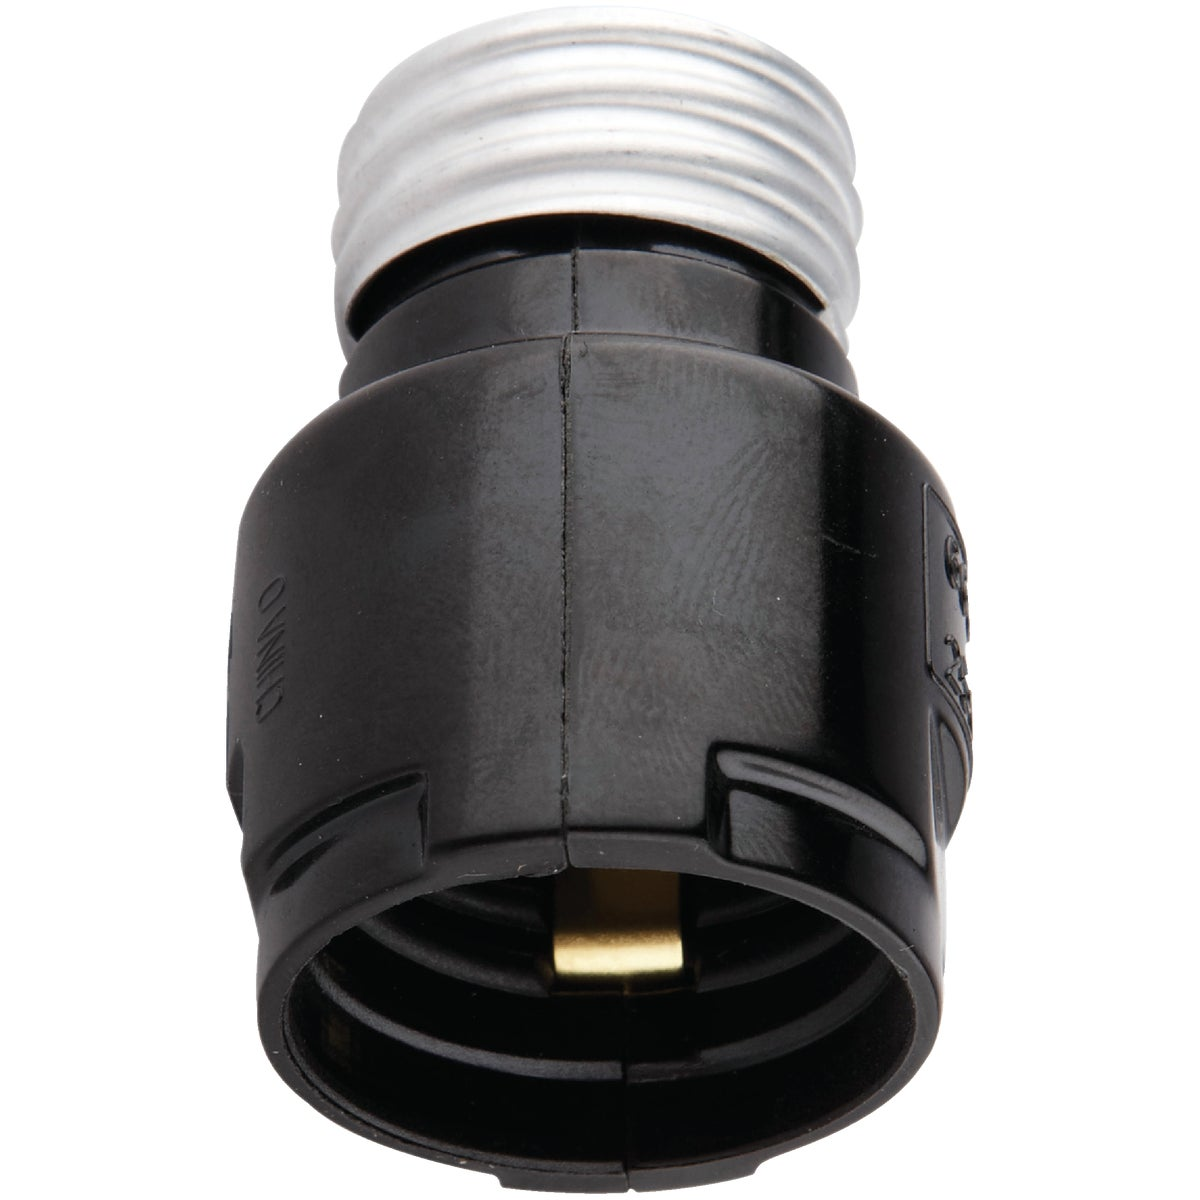 SOCKET EXTENDER - 009-2006 by Leviton Mfg Co